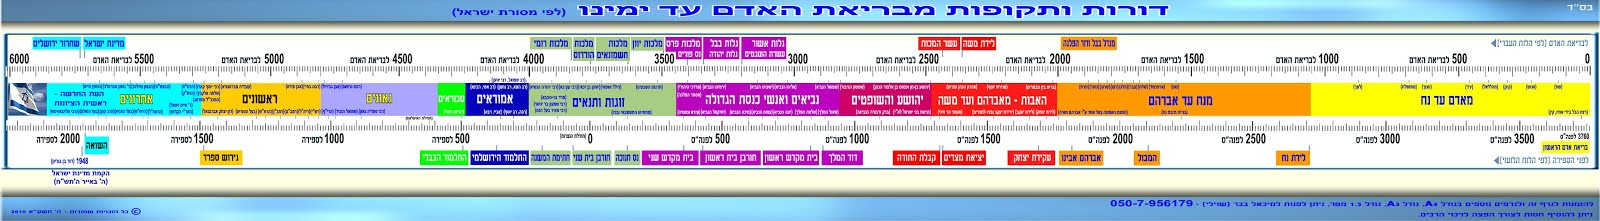 סרגלי ציר הזמן היהודי - דורות ותקופות מבריאת האדם עד ימינו